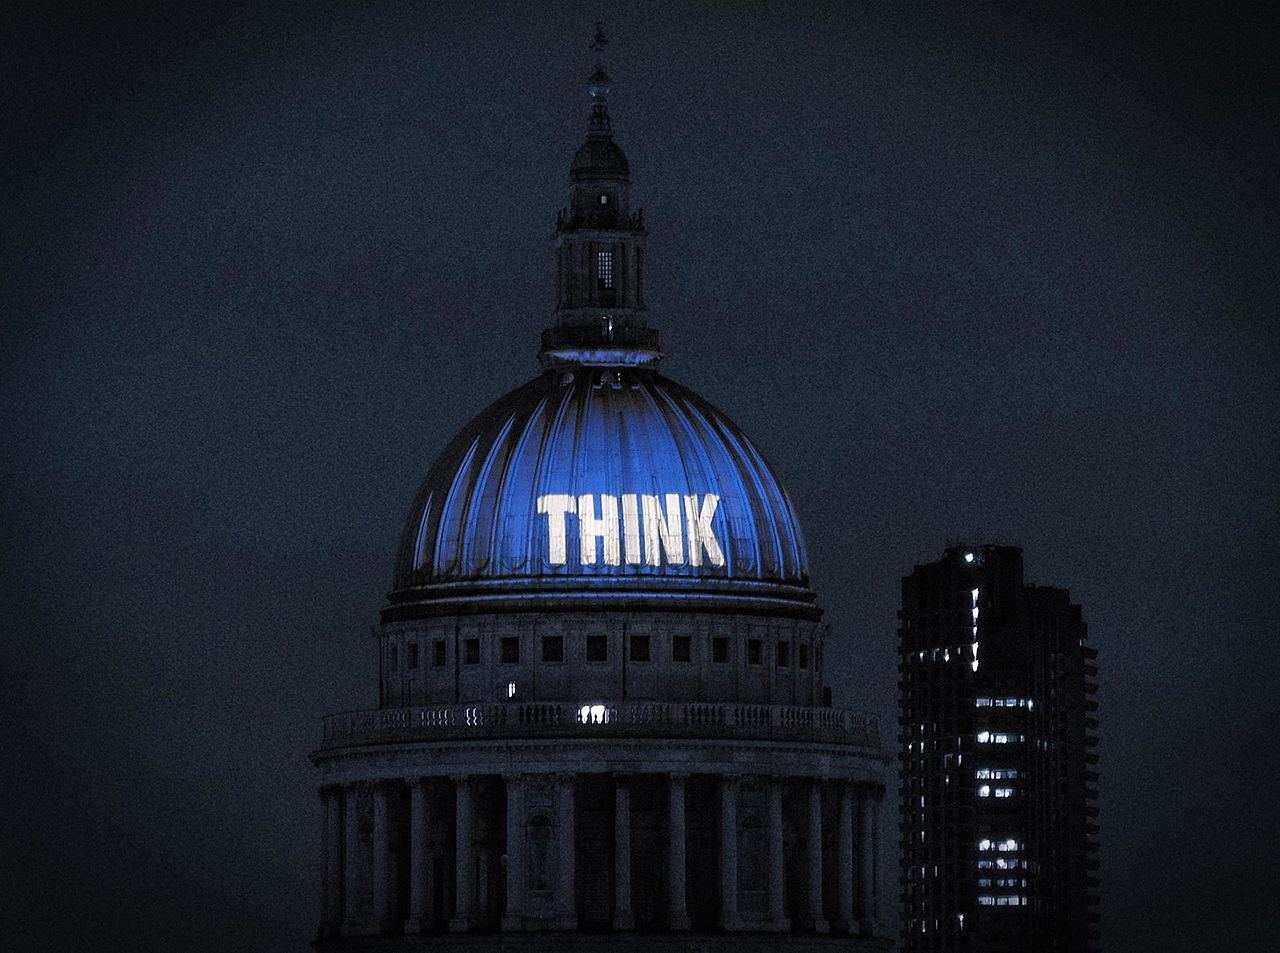 Normal martin firrell public art text for the 300th anniversary of the topping out of st paul s cathedral  london 2008